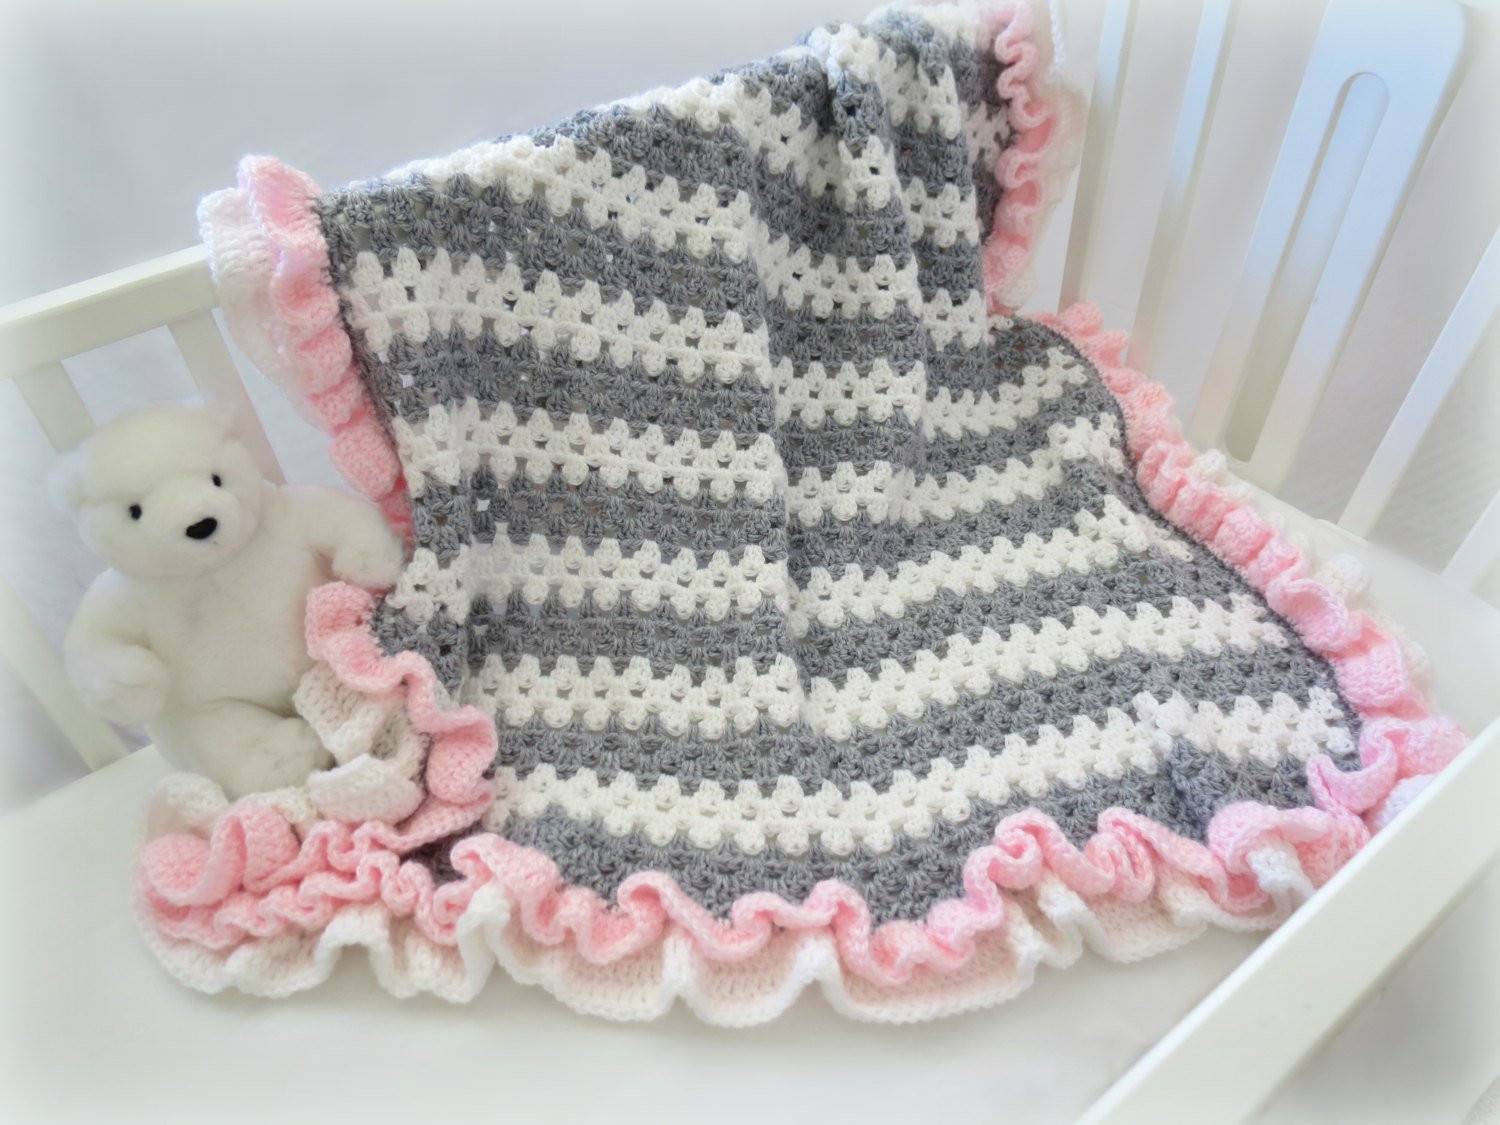 Baby Boy Crochet Blanket Patterns New Crochet Baby Blanket Pattern Baby Crochet Blanket Afghan Of Baby Boy Crochet Blanket Patterns Beautiful Pics for Crochet Baby Boy Blanket Patterns